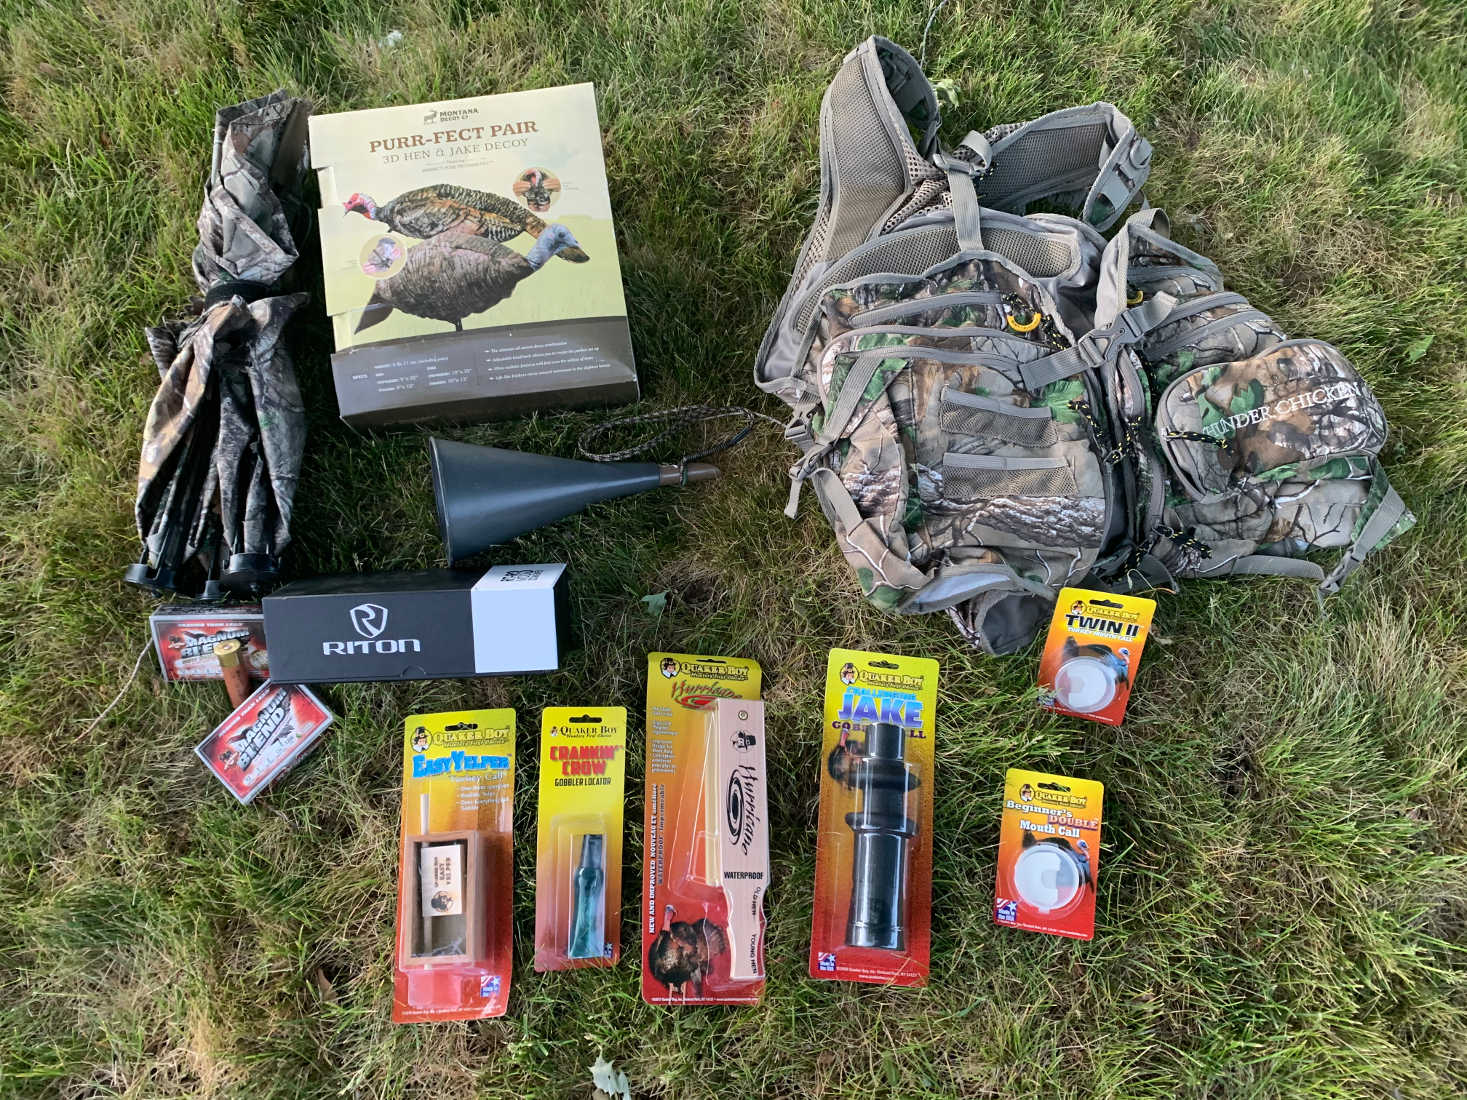 Still Haven't Bagged a Turkey? These Items May Help